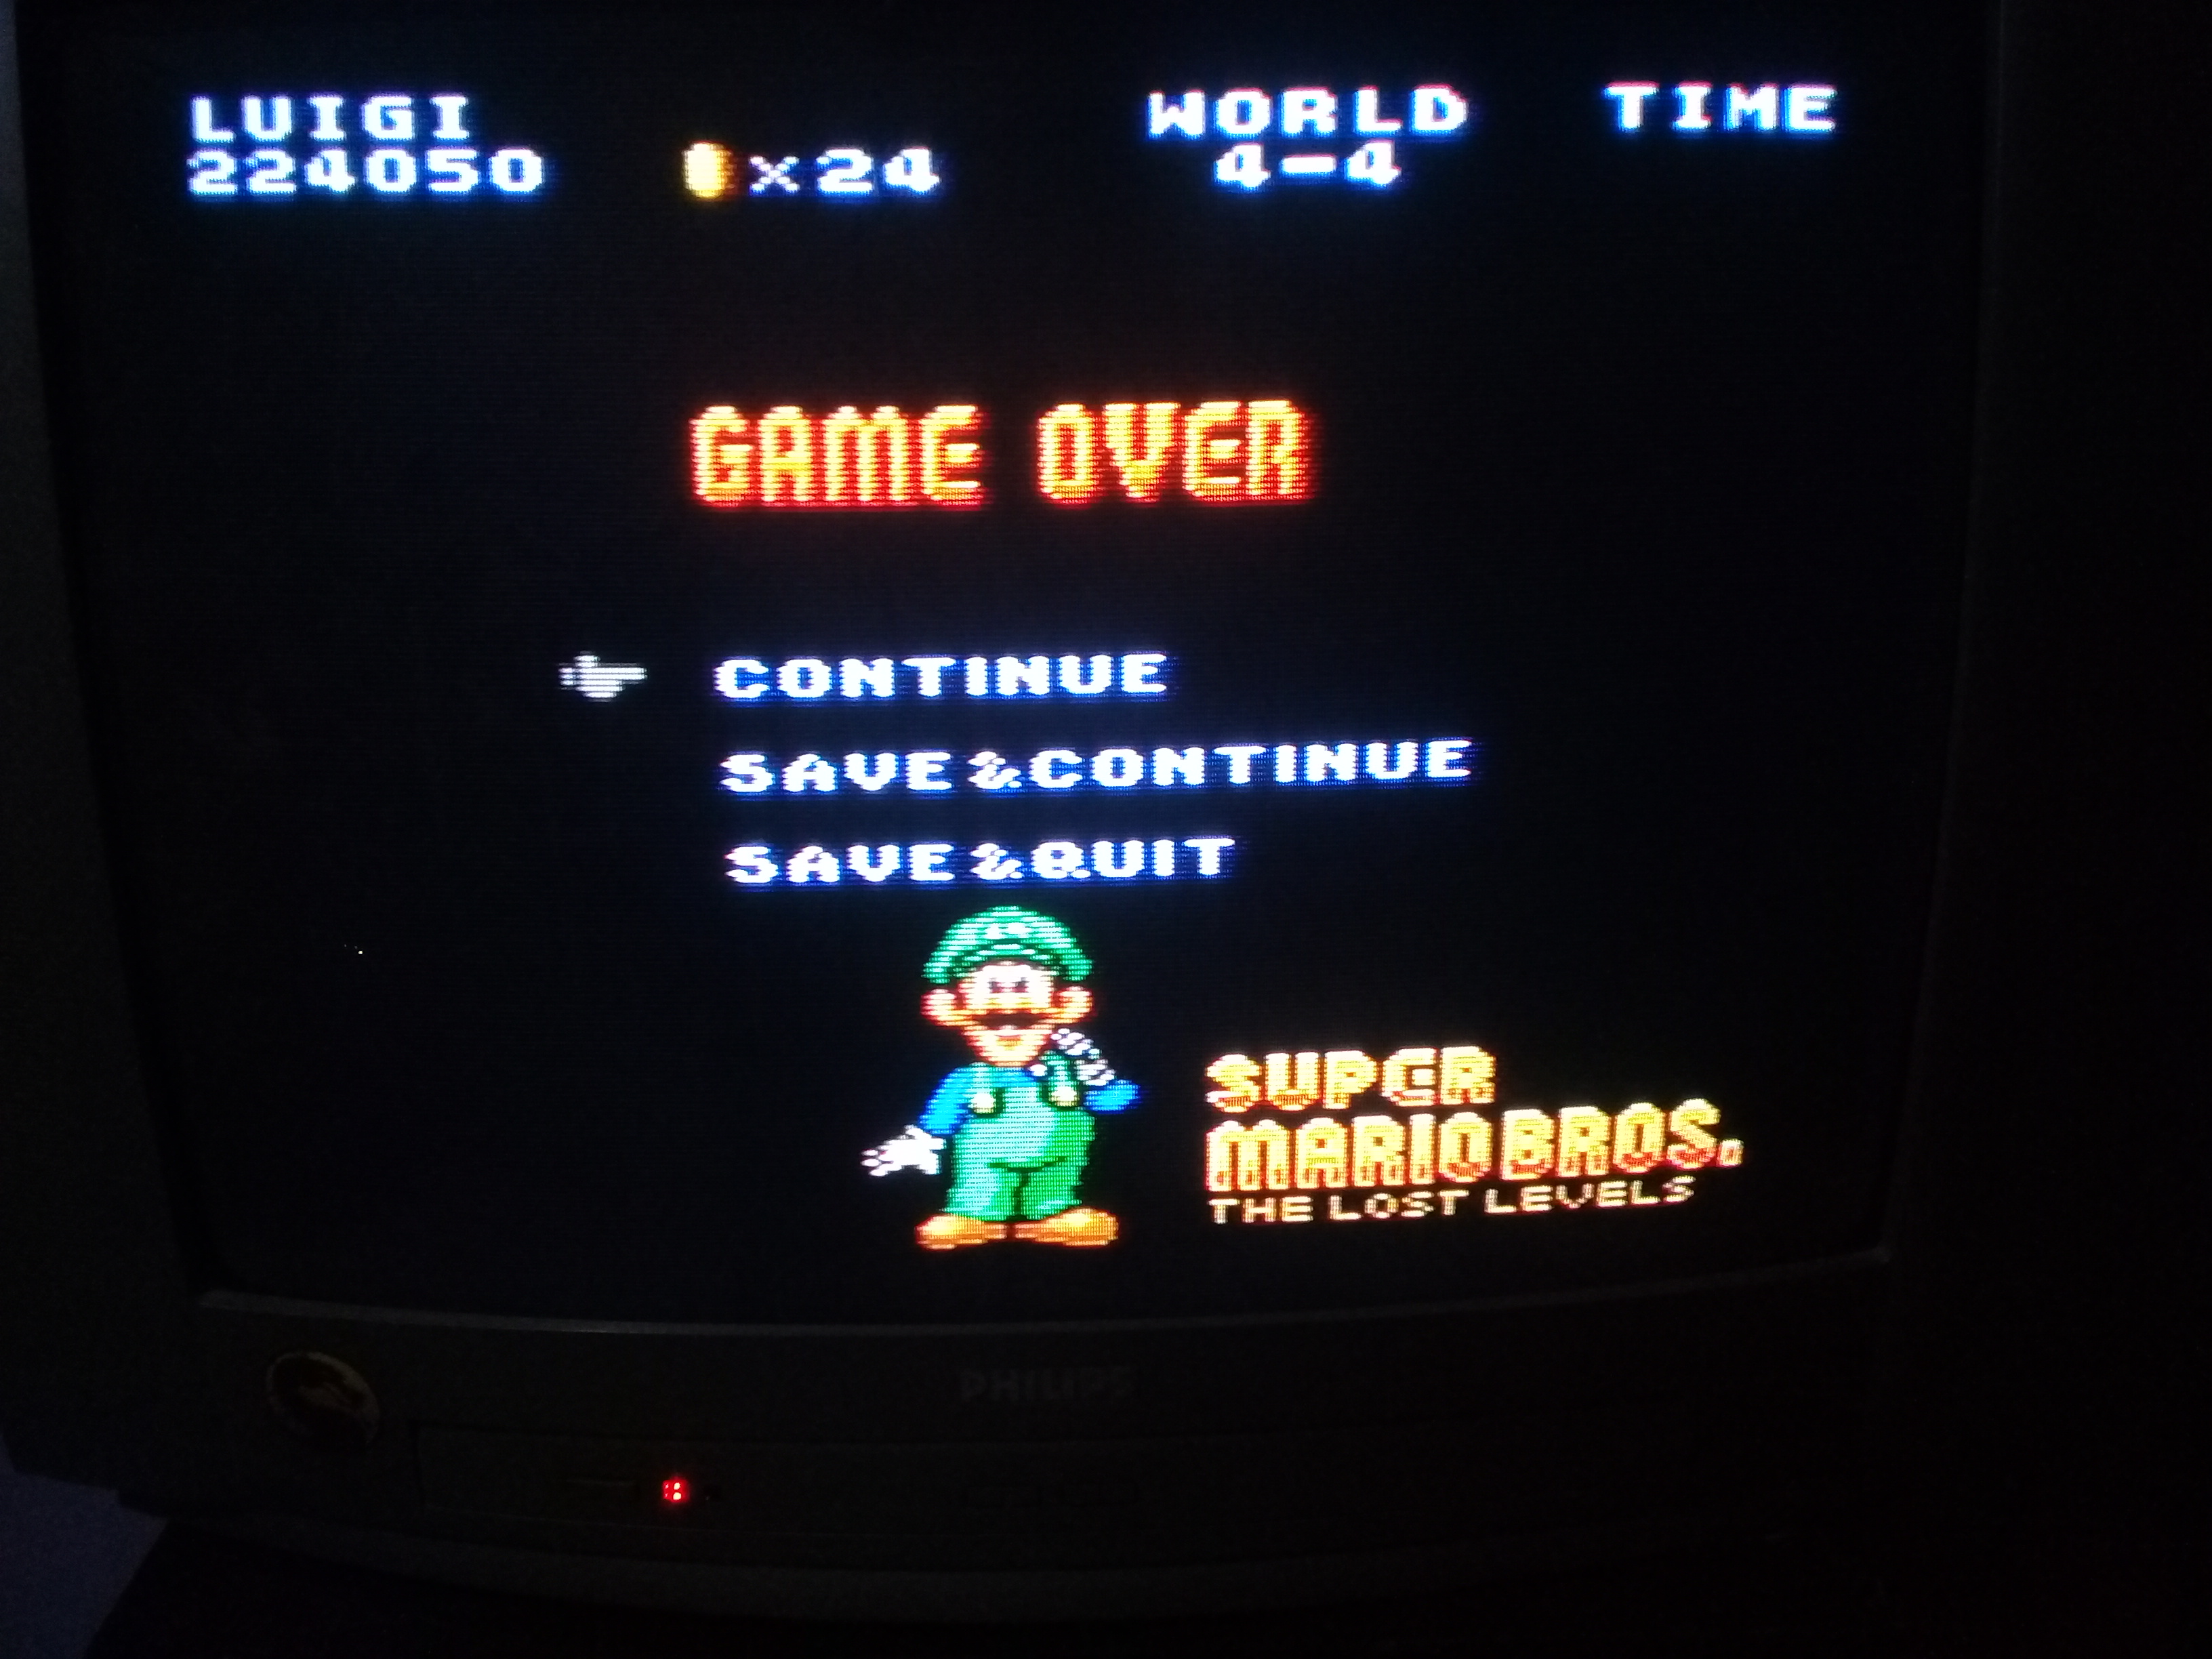 omargeddon: Super Mario All-Stars: Super Mario Bros: The Lost Levels (SNES/Super Famicom) 224,050 points on 2020-05-06 20:56:07